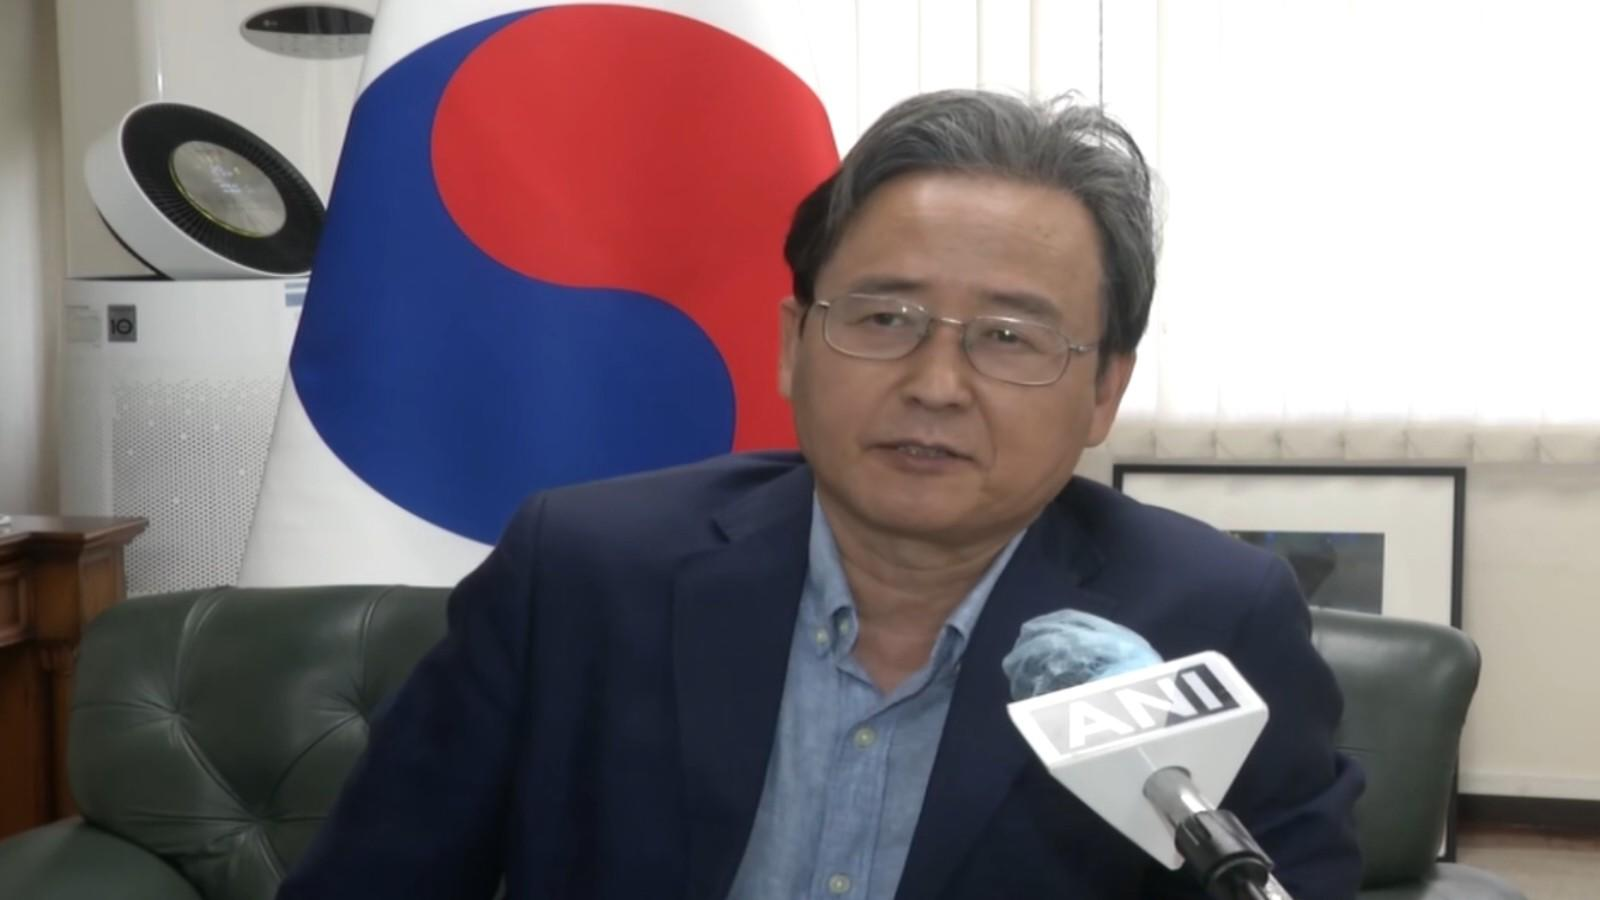 s-korea-thinking-to-establish-korean-language-institute-in-delhi-says-envoy